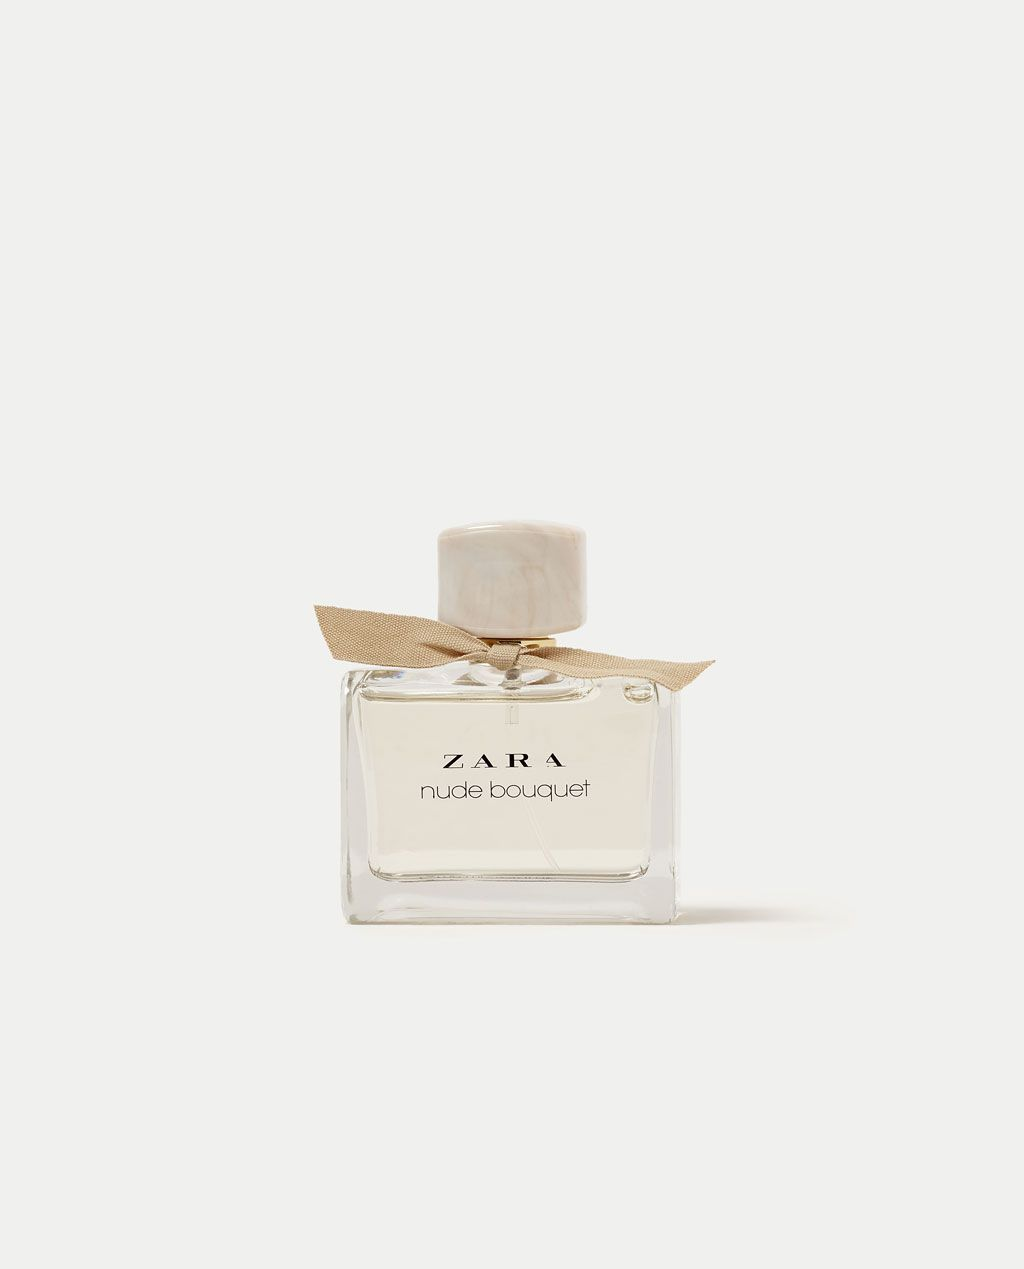 Image 1 Of Zara Nude Bouquet Eau De Parfum 100 Ml From Zara